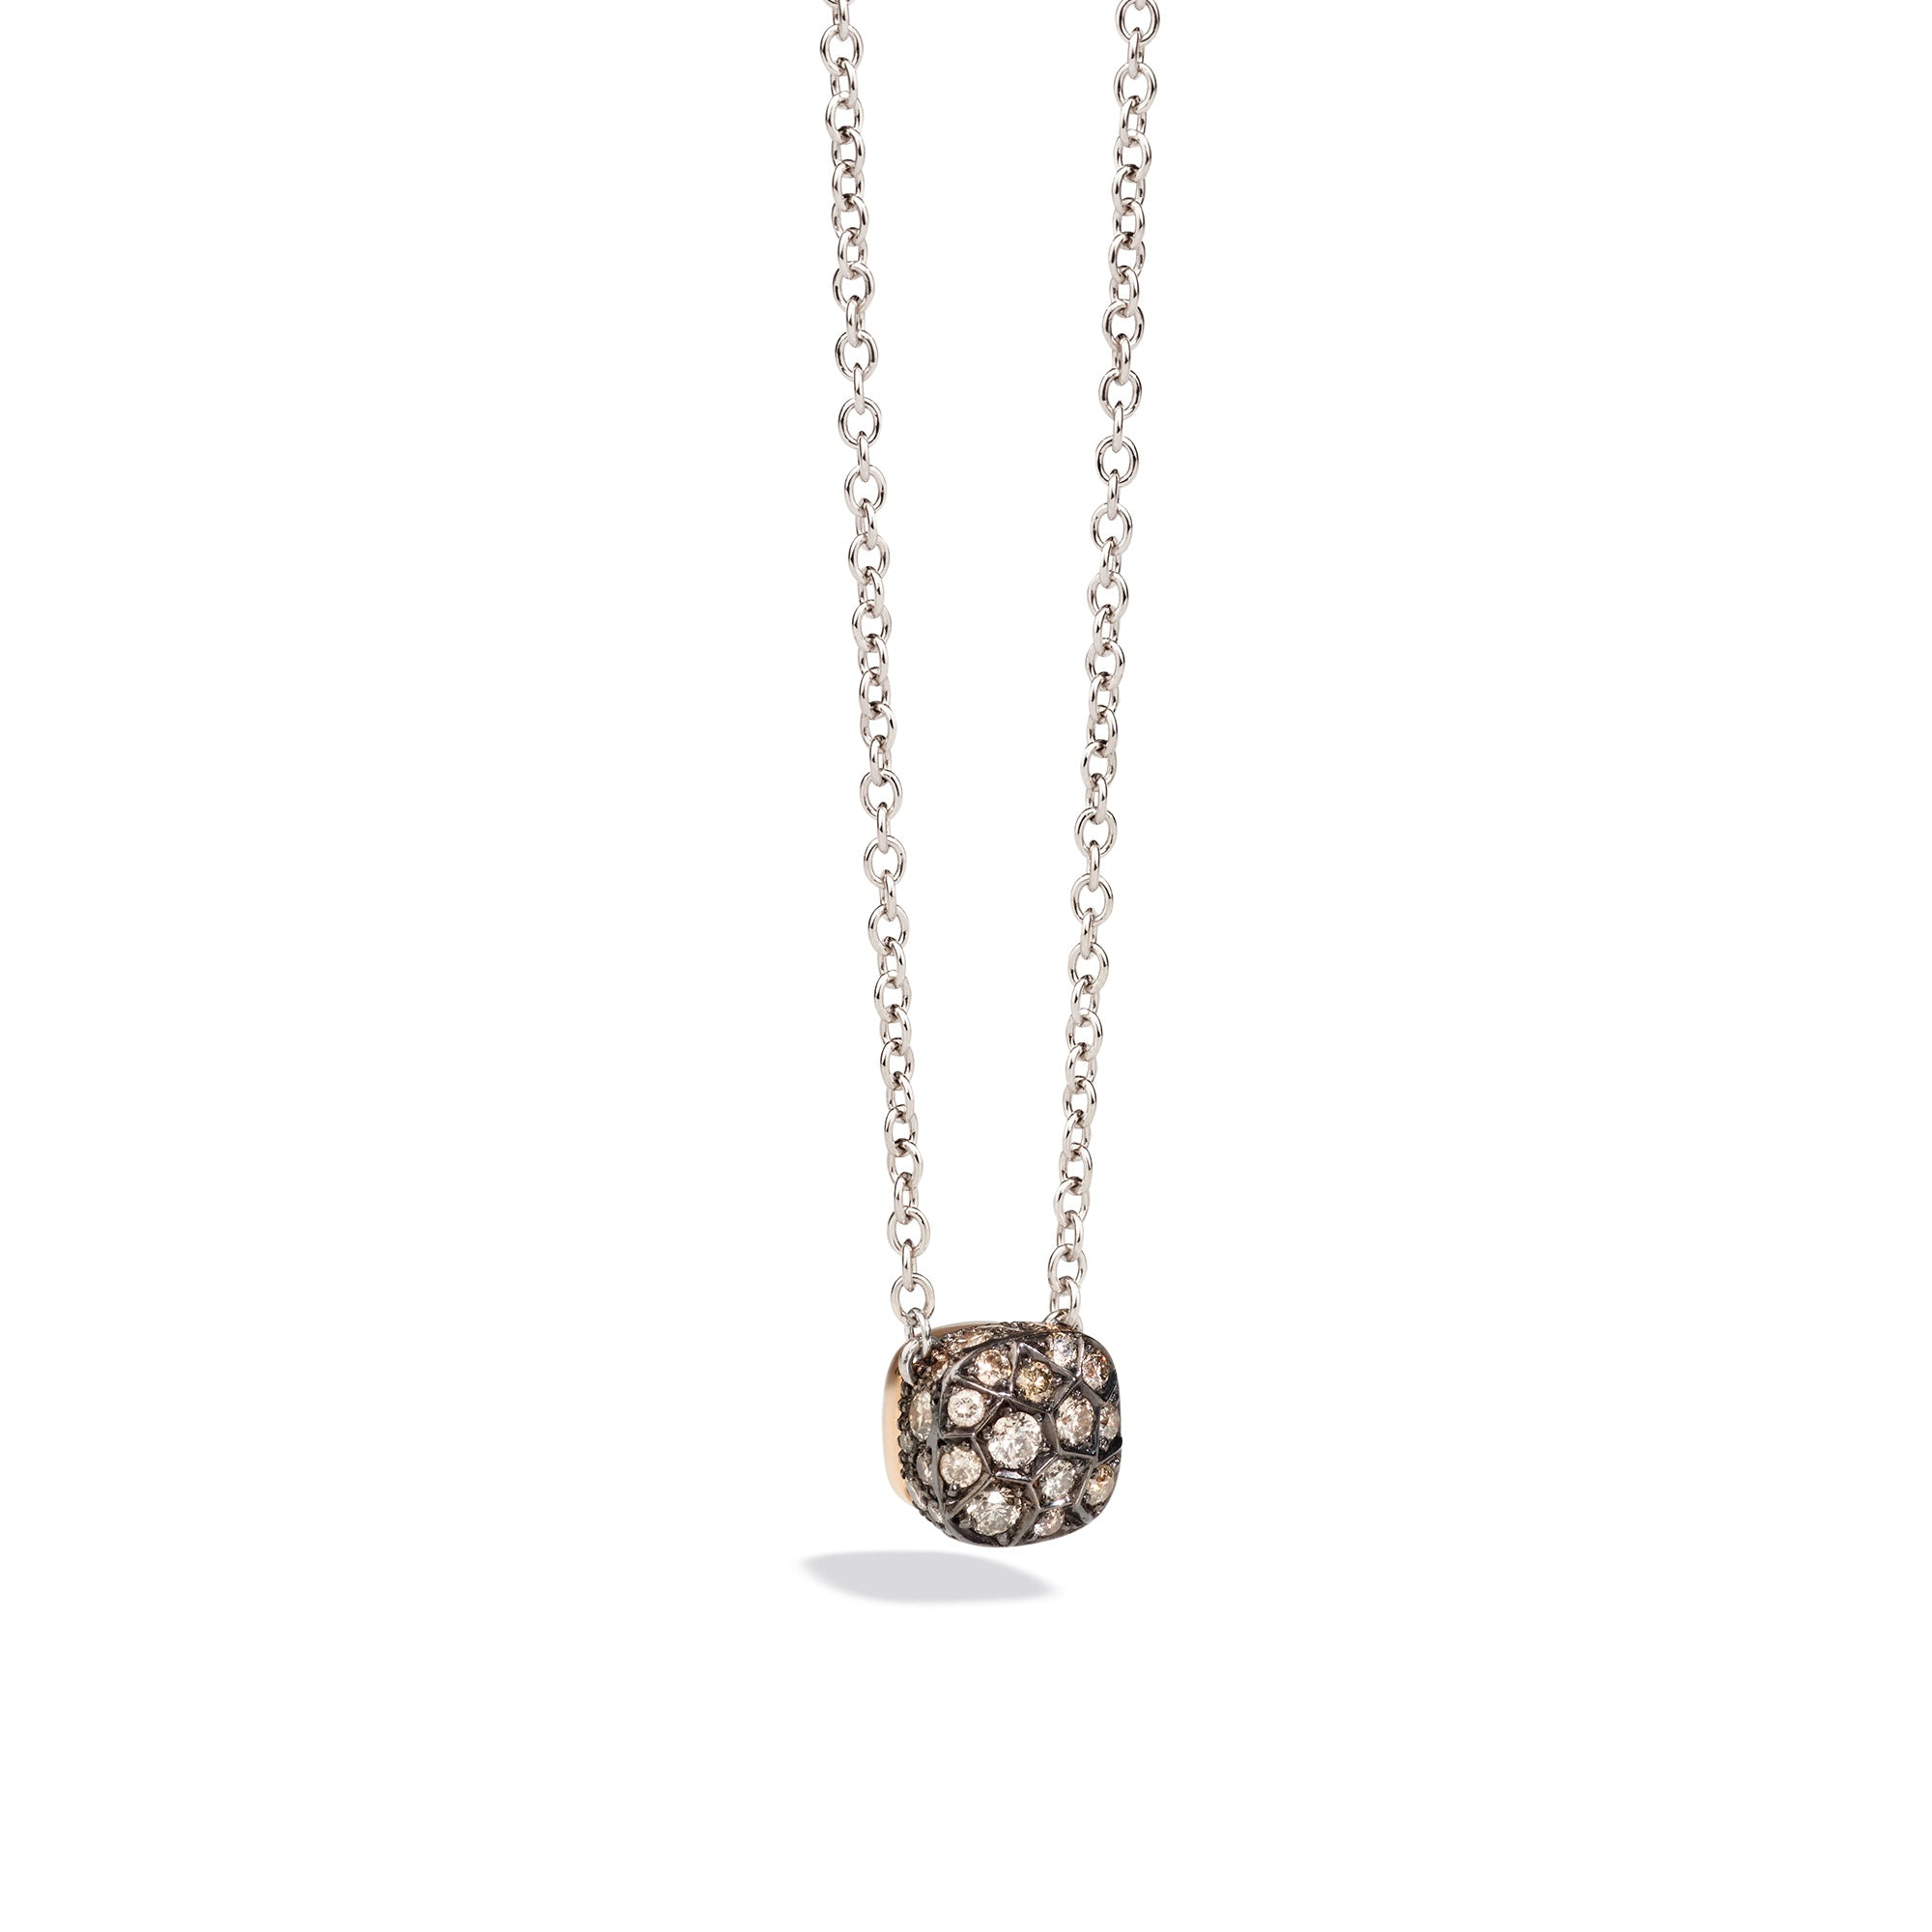 Nudo Necklace with Petit Pendant in 18k rose and white gold with Brown Diamonds - Orsini Jewellers NZ